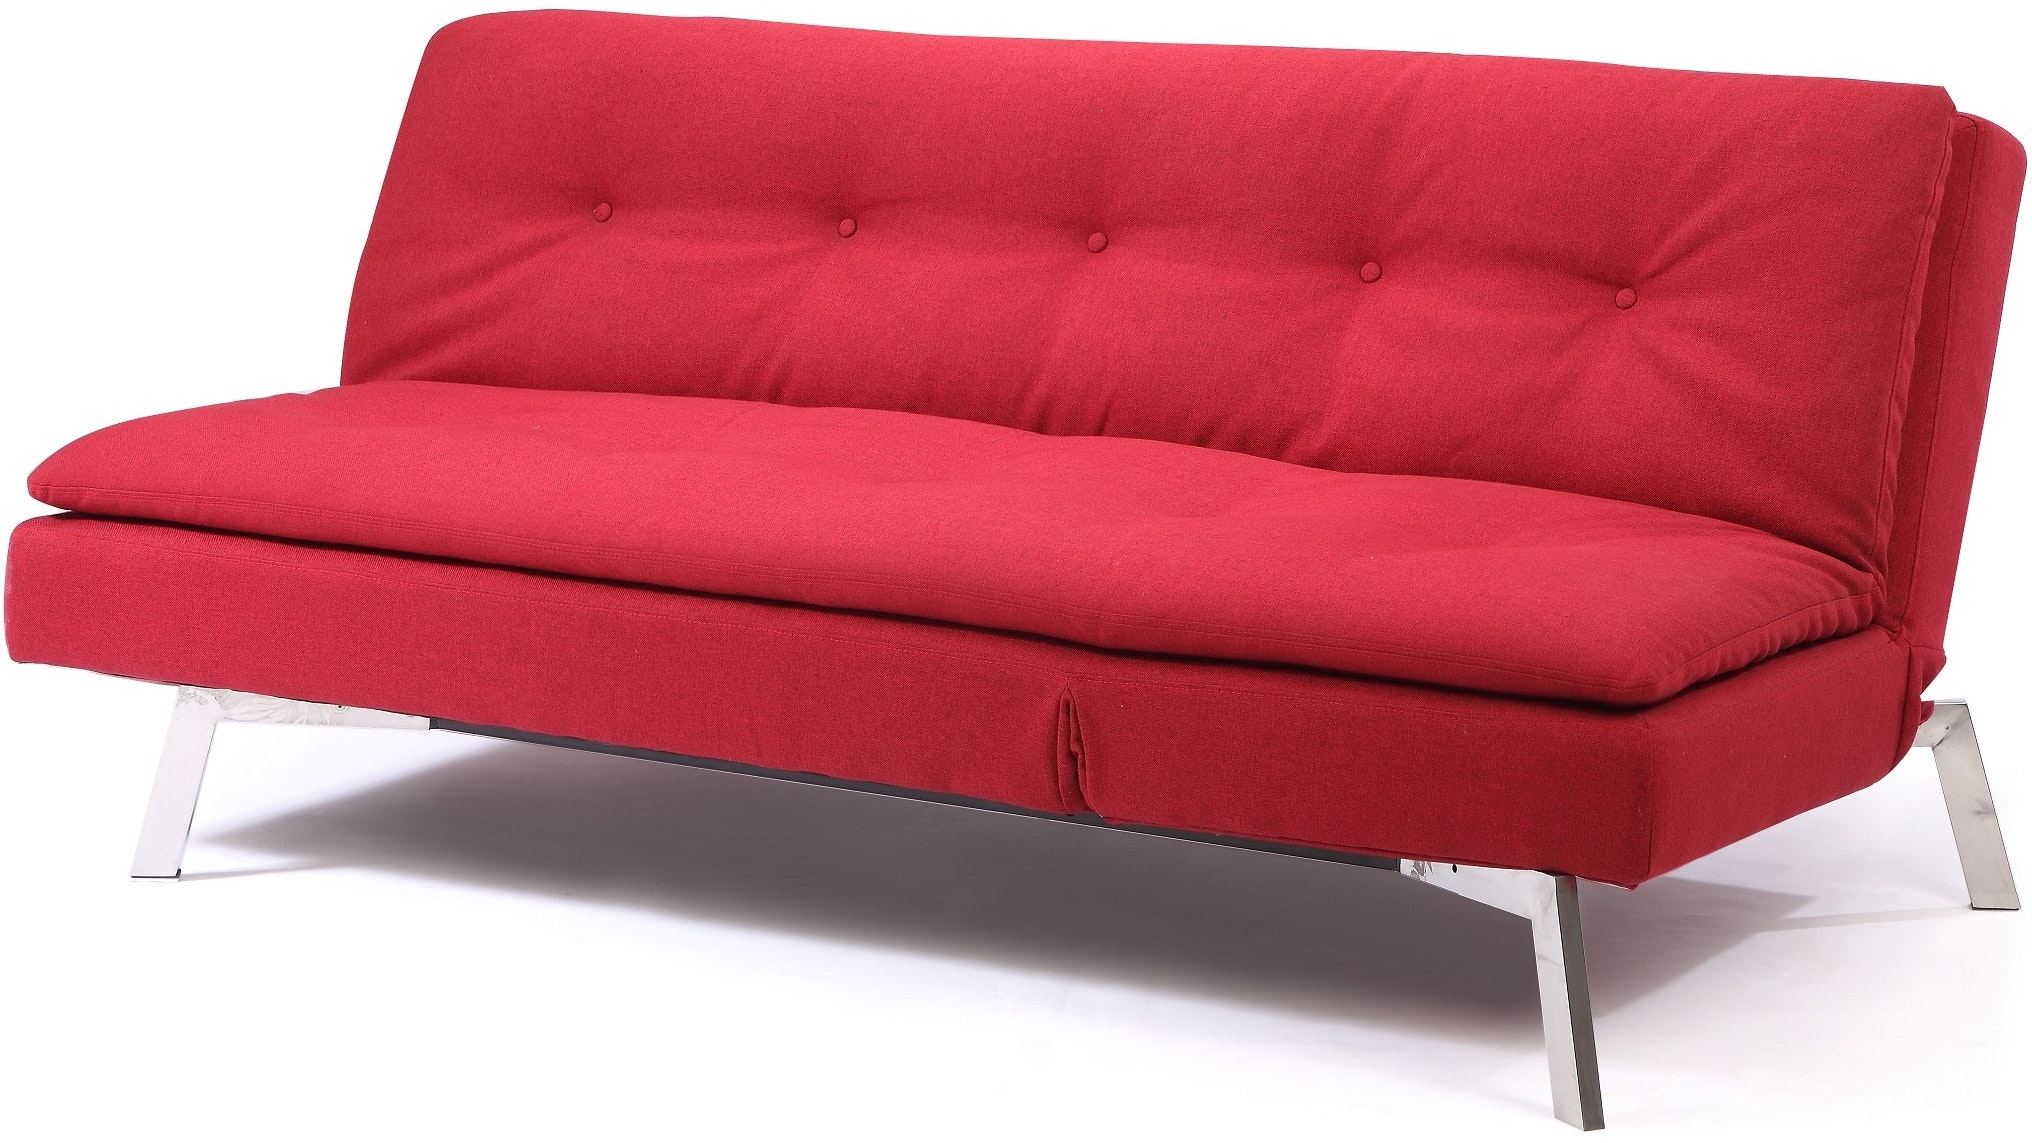 sofa bed. Shelby Sofa Bed